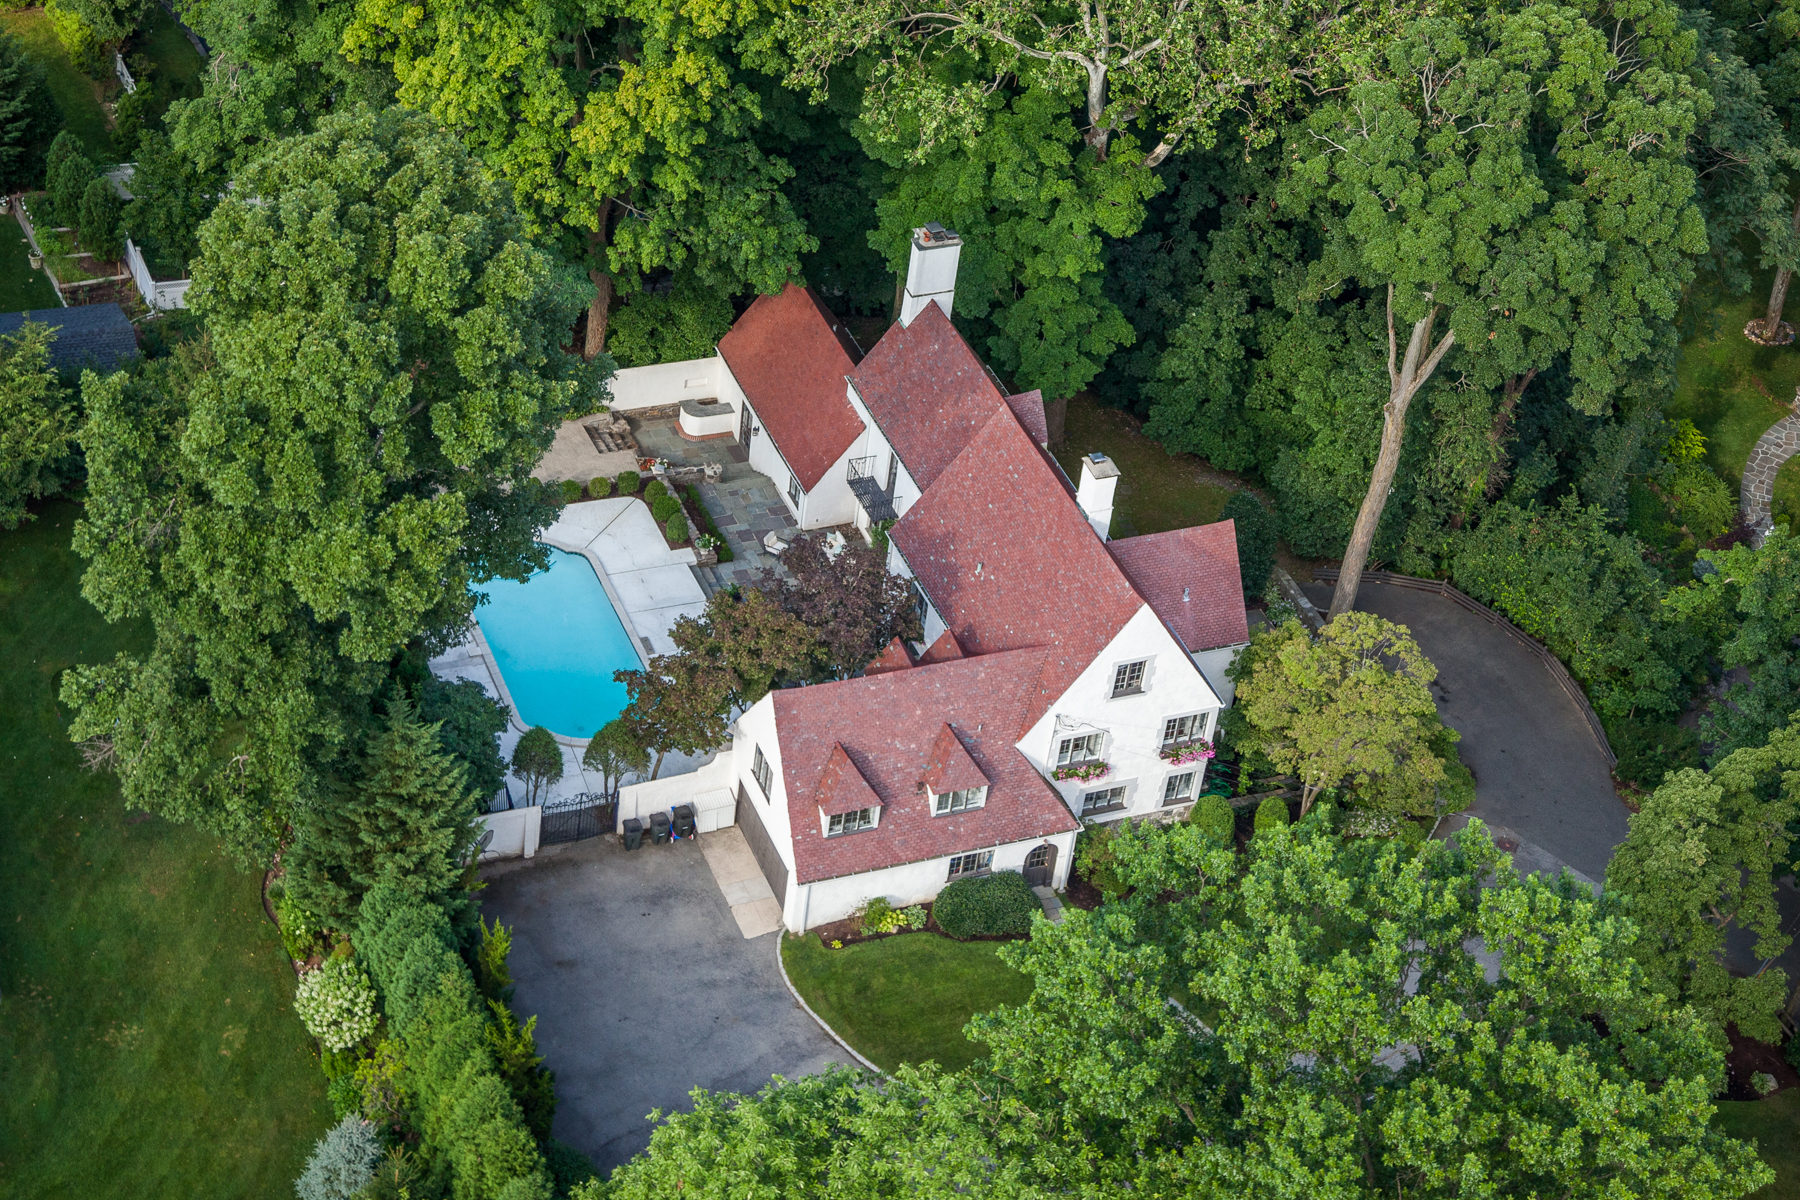 Single Family Home for Sale at Spectacular Bronxville Tudor 17 Wood End Lane Bronxville, New York, 10708 United States